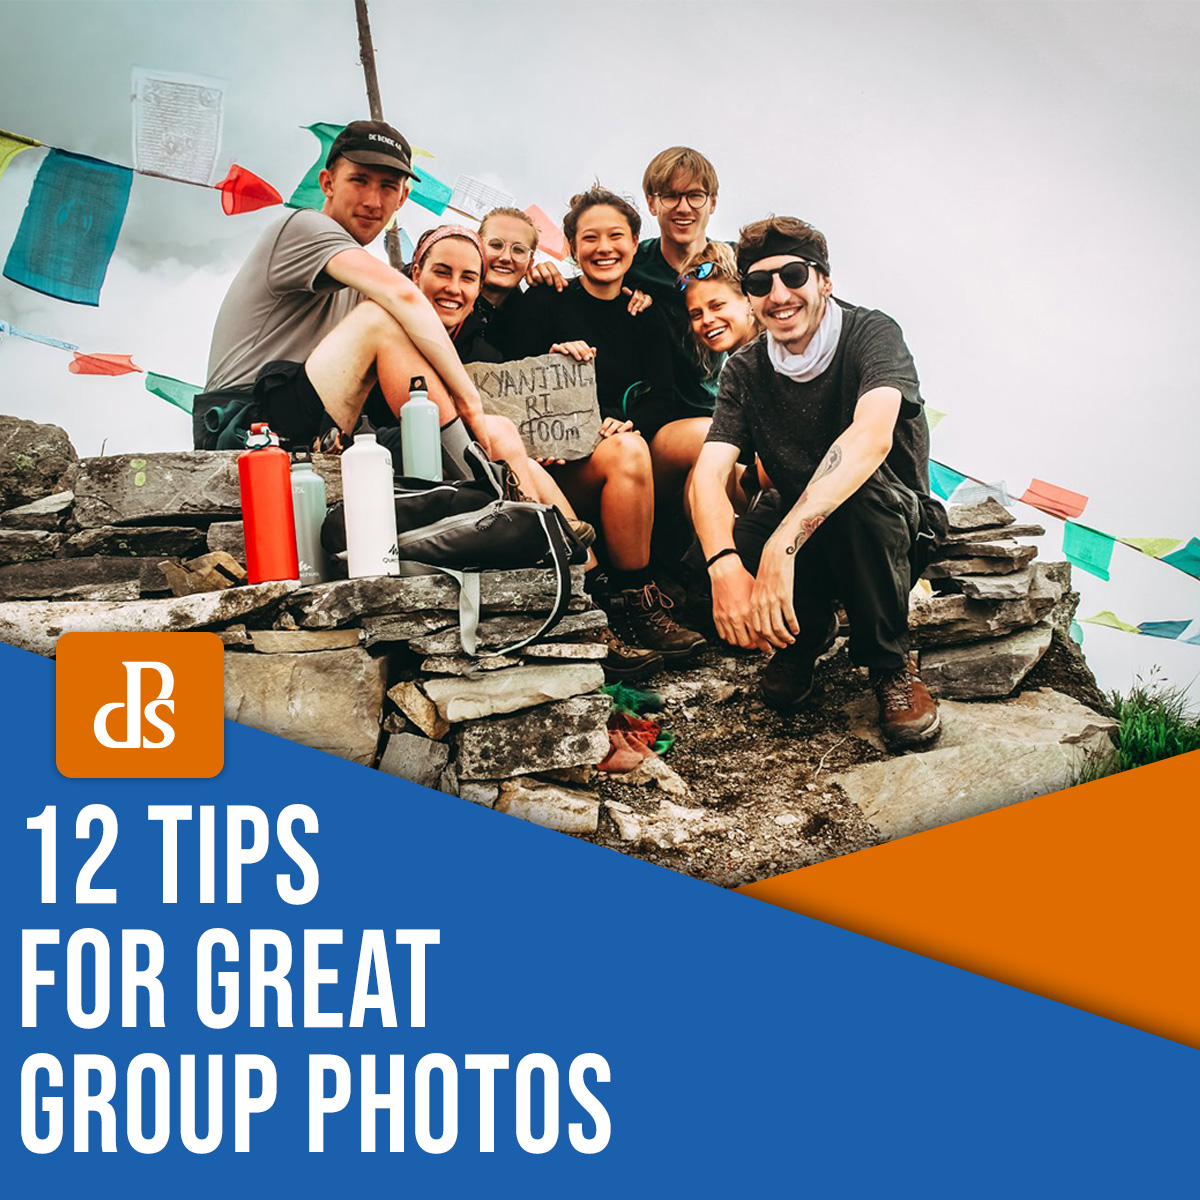 How to Take Great Group Photos: 12 Easy Tips